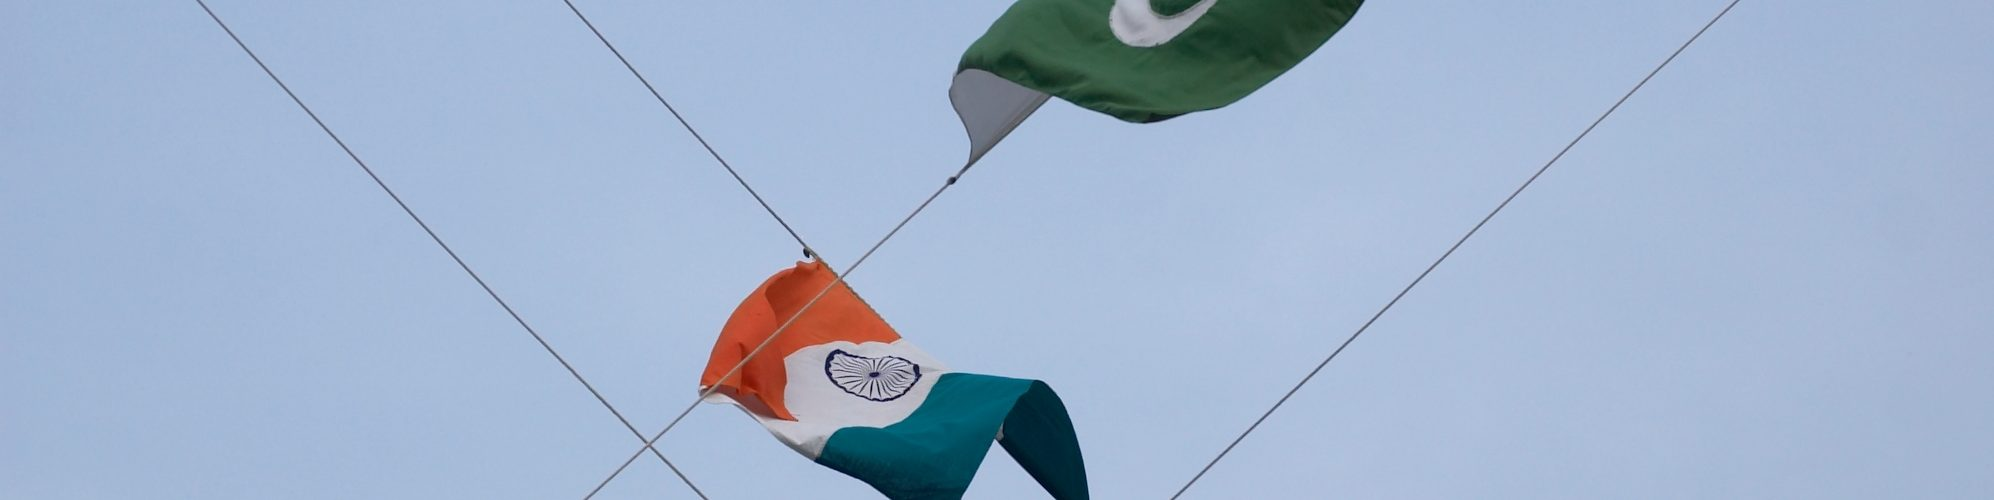 UN Chief urged for dialogue, engagement on Kashmir issue between India and Pakistan